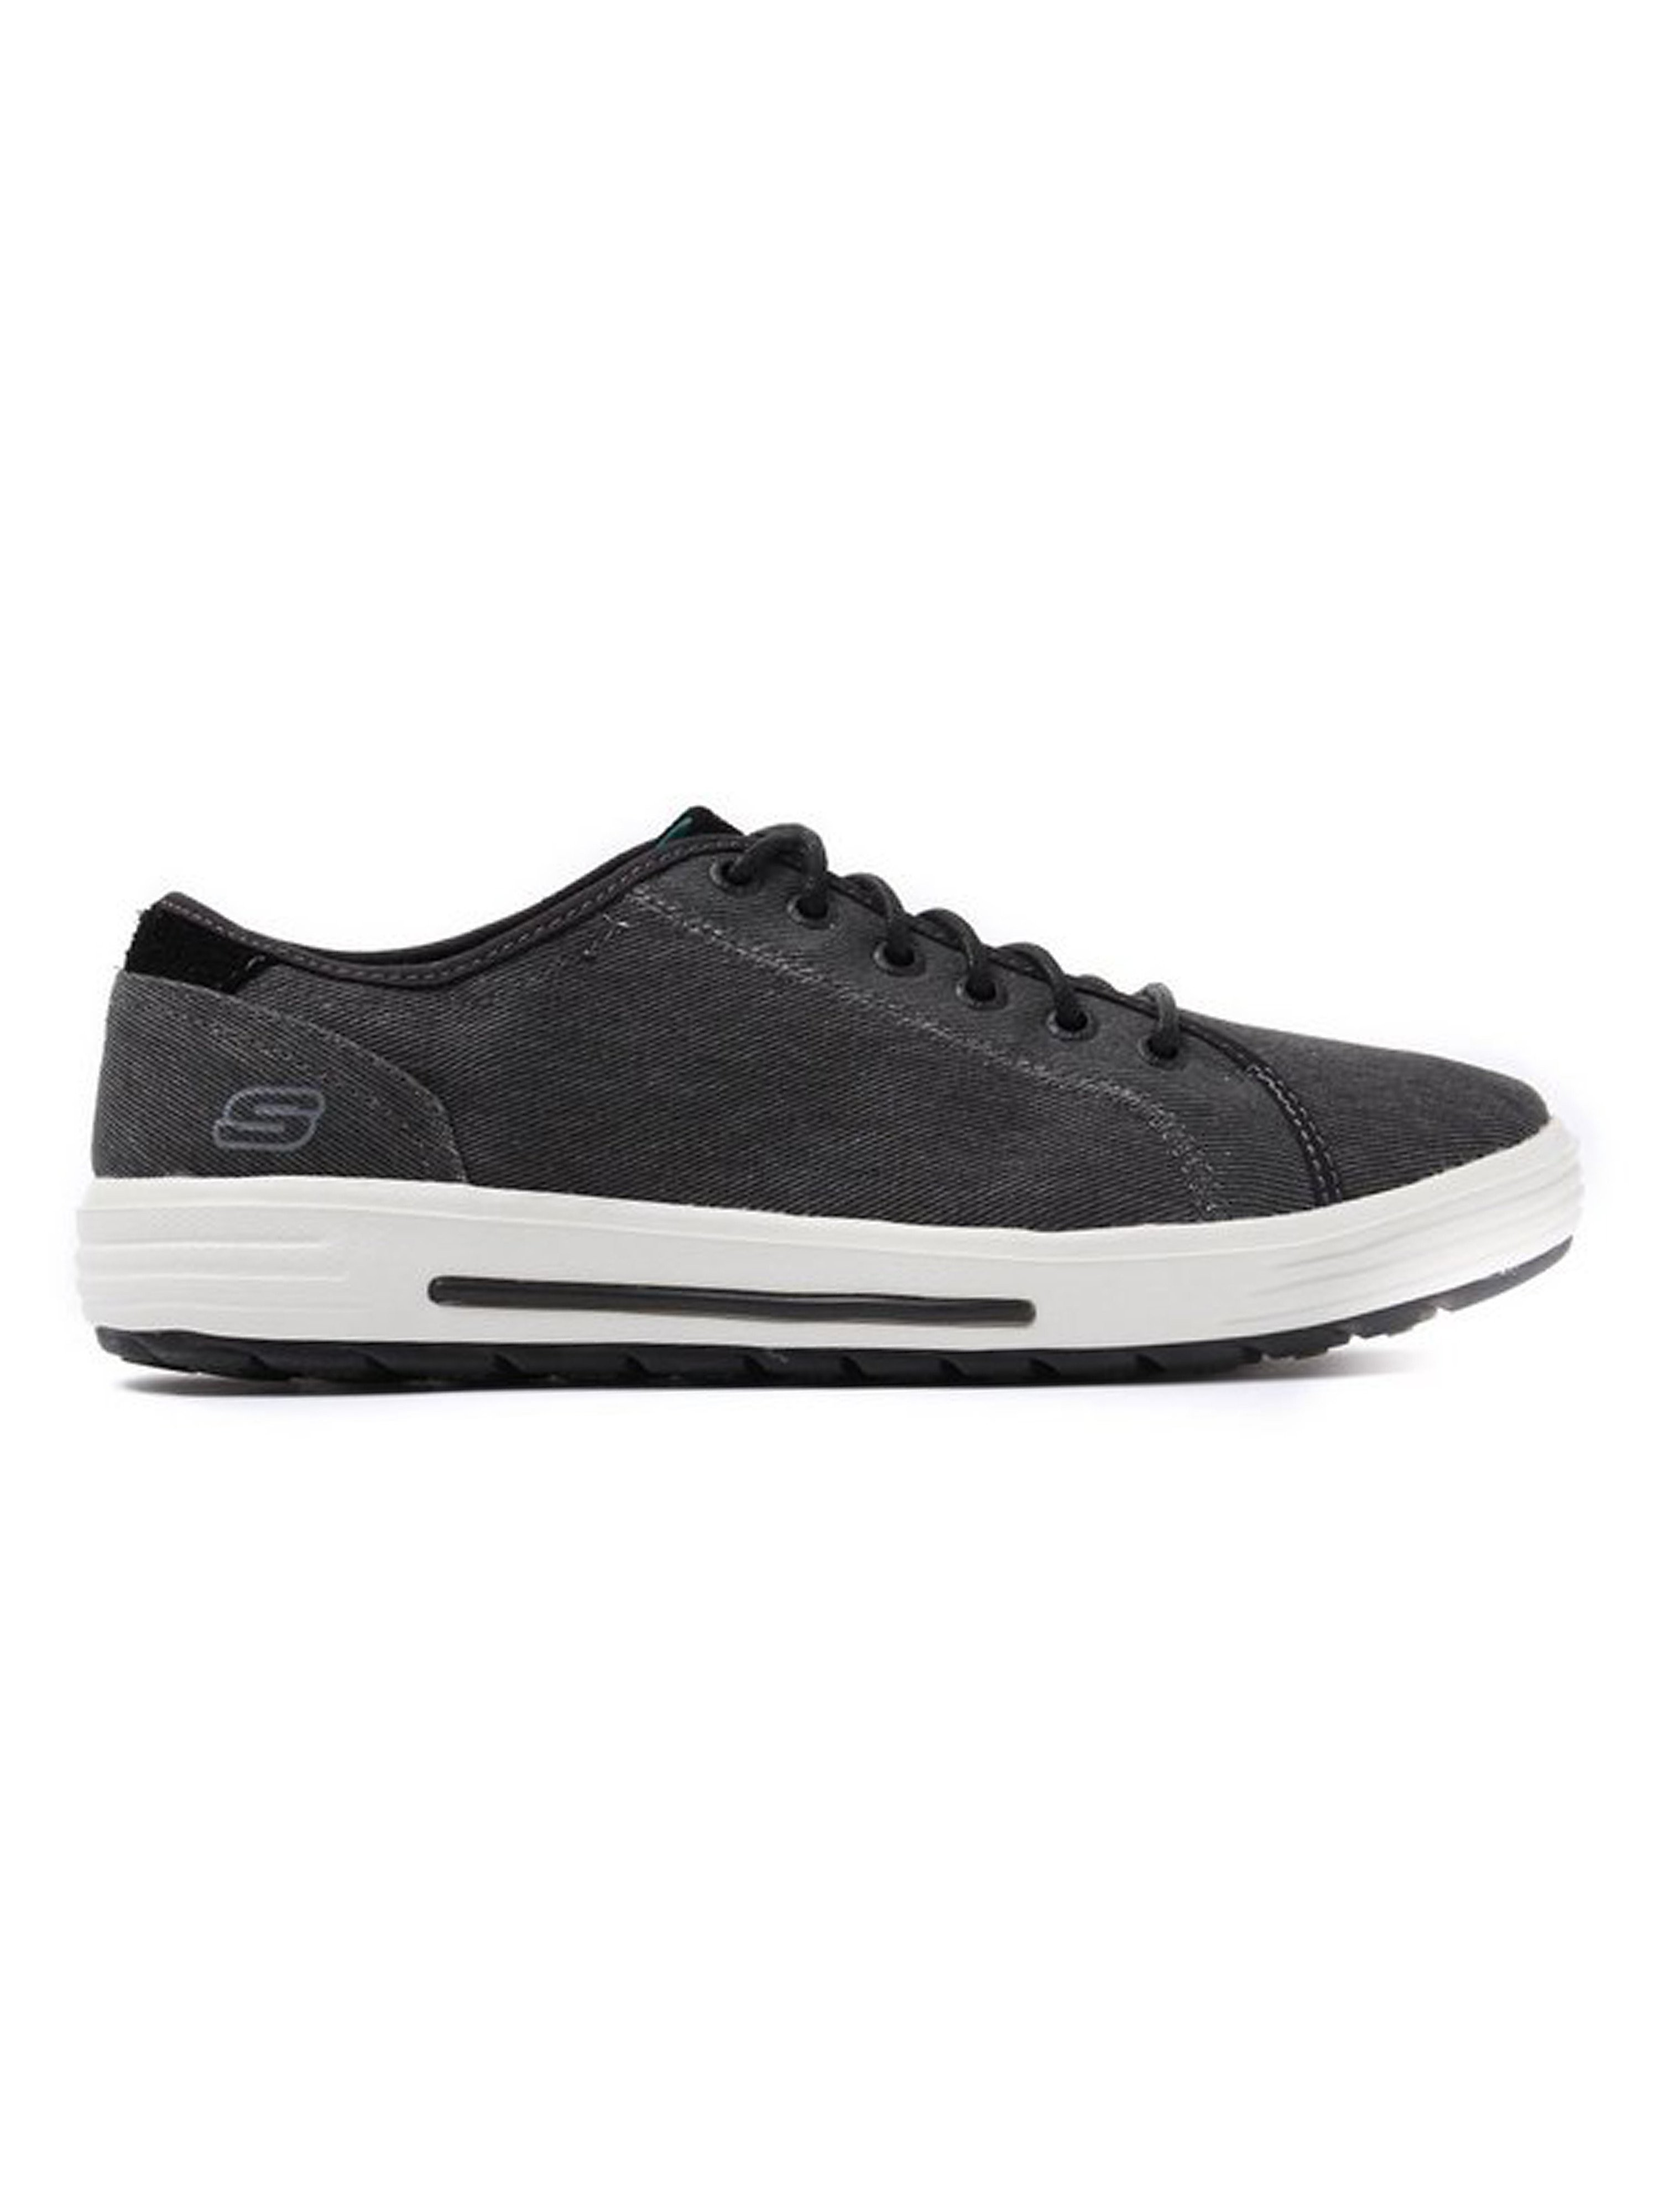 Skechers Men's Porter Meteno Trainers - Black Canvas